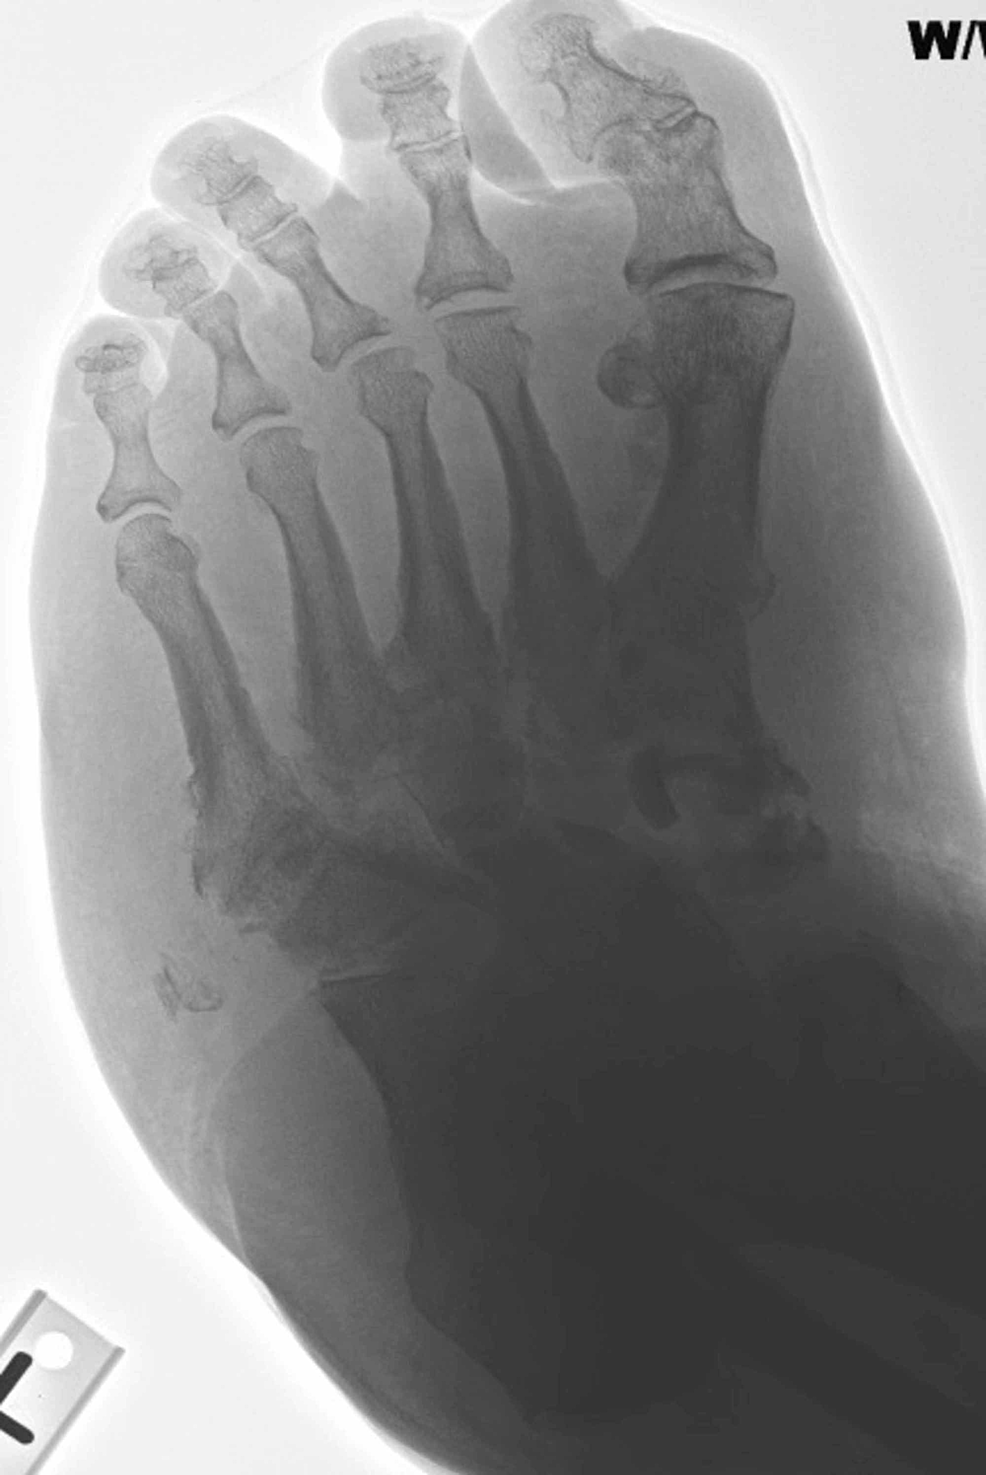 Medial-oblique-view-demonstrated-diffuse-tarsal-bone-fragmentation-and-obliteration-of-native-joint-spaces-consistent-with-active-Charcot-neuroarthropathy.